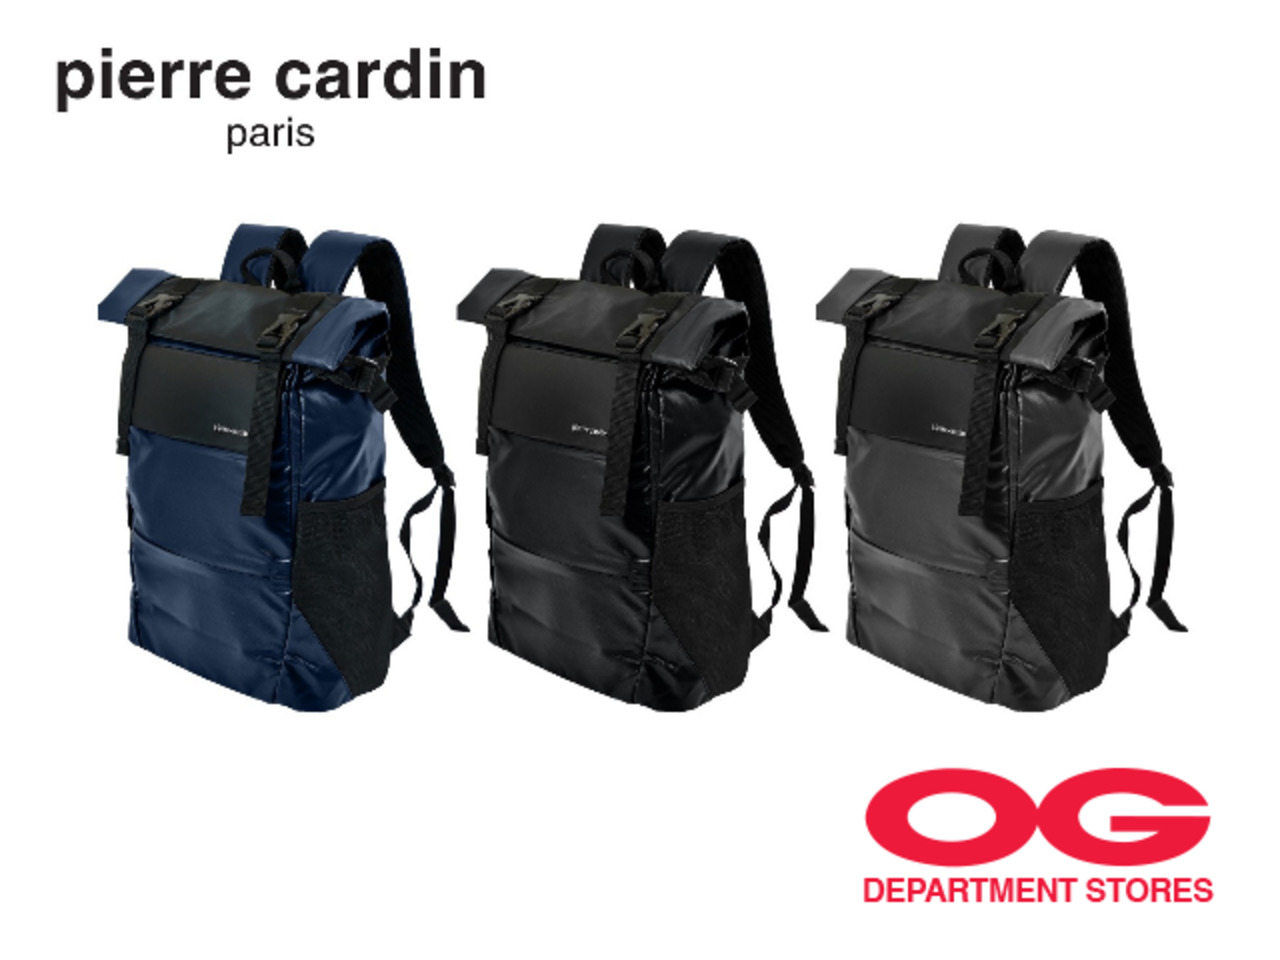 PIERRE CARDIN Backpack @ $39 + Get $9 off URS UV Umbrella (UP $18.90) with your purchase